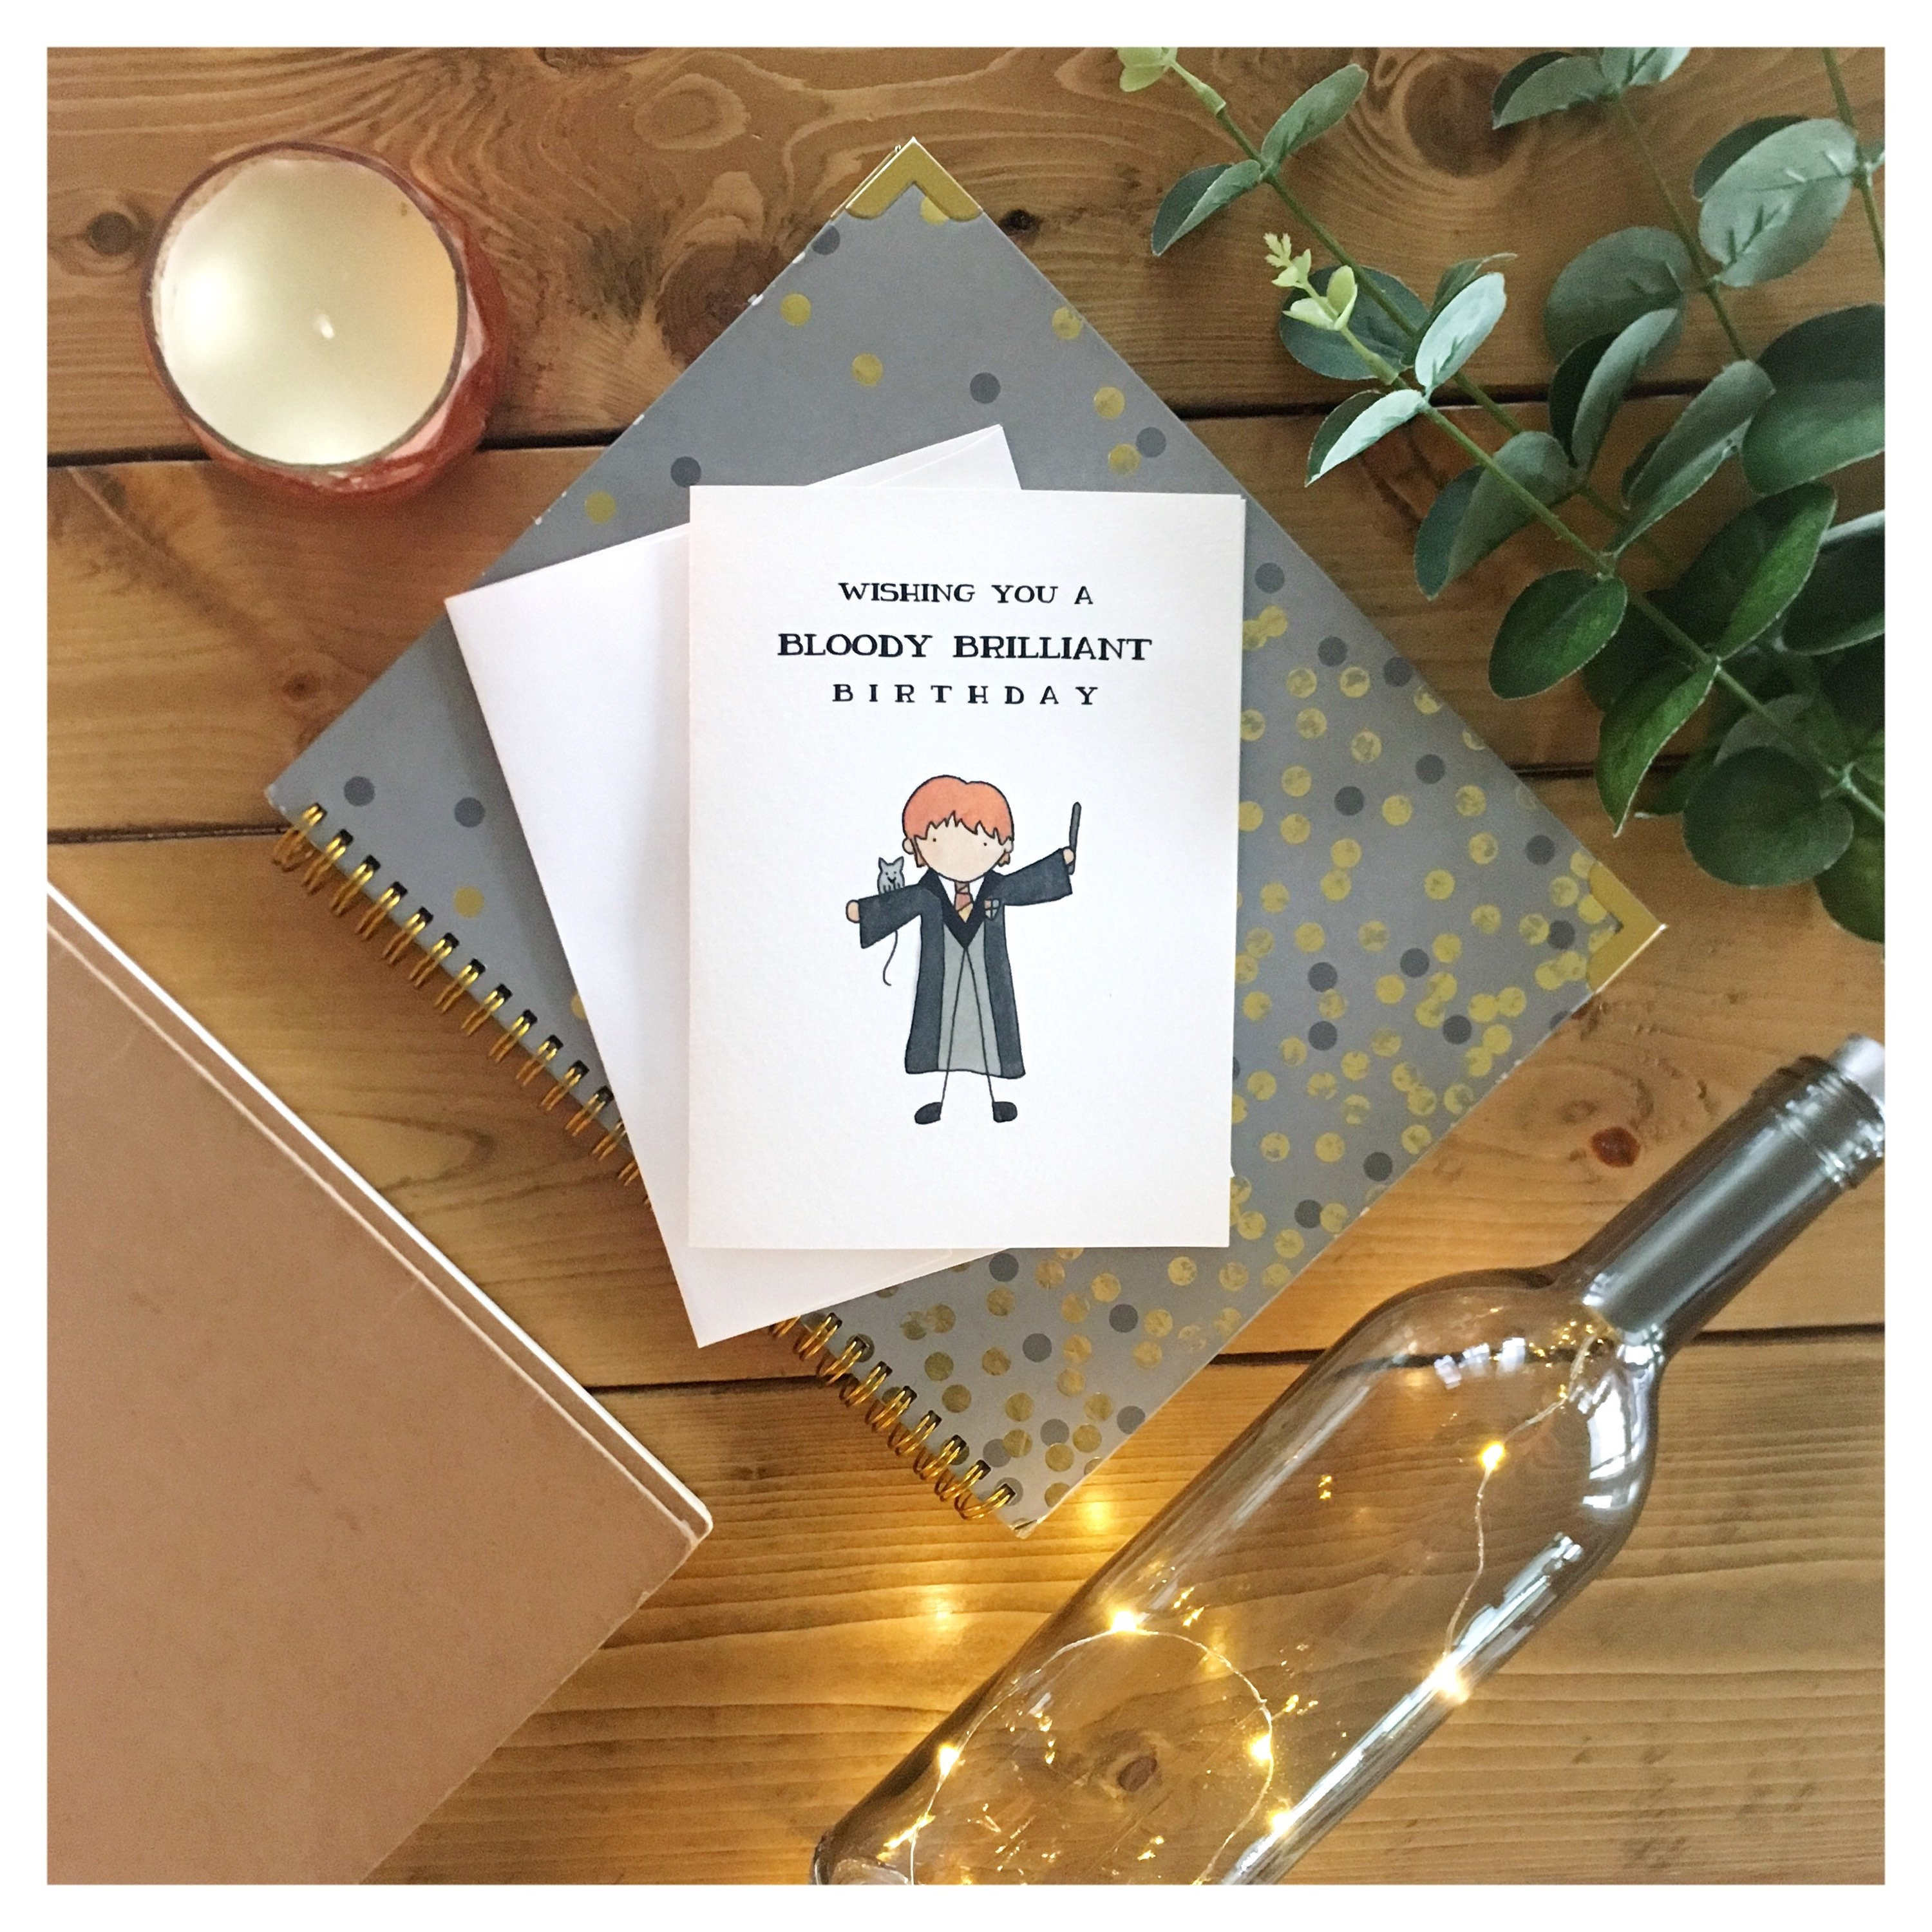 Bloody brilliant birthday birthday card greeting card funny bloody brilliant birthday birthday card greeting card funny card punny harry potter ron weasley for him for her british dad joke bookmarktalkfo Image collections